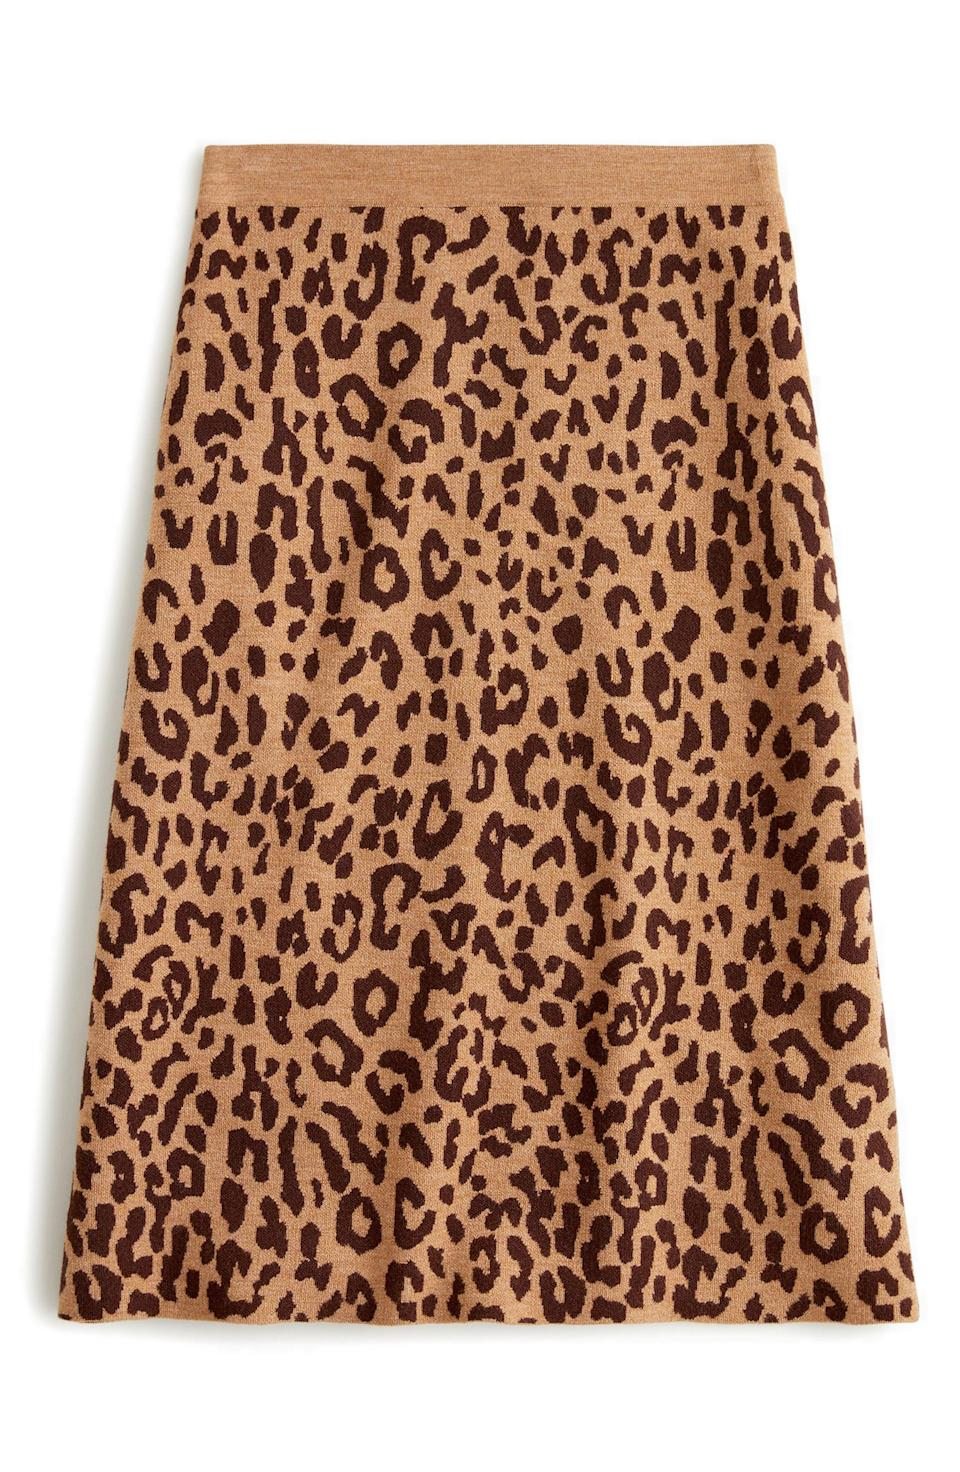 """<p><strong>J.CREW</strong></p><p>nordstrom.com</p><p><strong>$58.49</strong></p><p><a href=""""https://go.redirectingat.com?id=74968X1596630&url=https%3A%2F%2Fwww.nordstrom.com%2Fs%2Fj-crew-leopard-sweater-skirt%2F5755706&sref=https%3A%2F%2Fwww.elle.com%2Ffashion%2Fshopping%2Fg34741930%2Fnordstrom-12-days-of-cyber-savings-sale%2F"""" rel=""""nofollow noopener"""" target=""""_blank"""" data-ylk=""""slk:Shop Now"""" class=""""link rapid-noclick-resp"""">Shop Now</a></p>"""